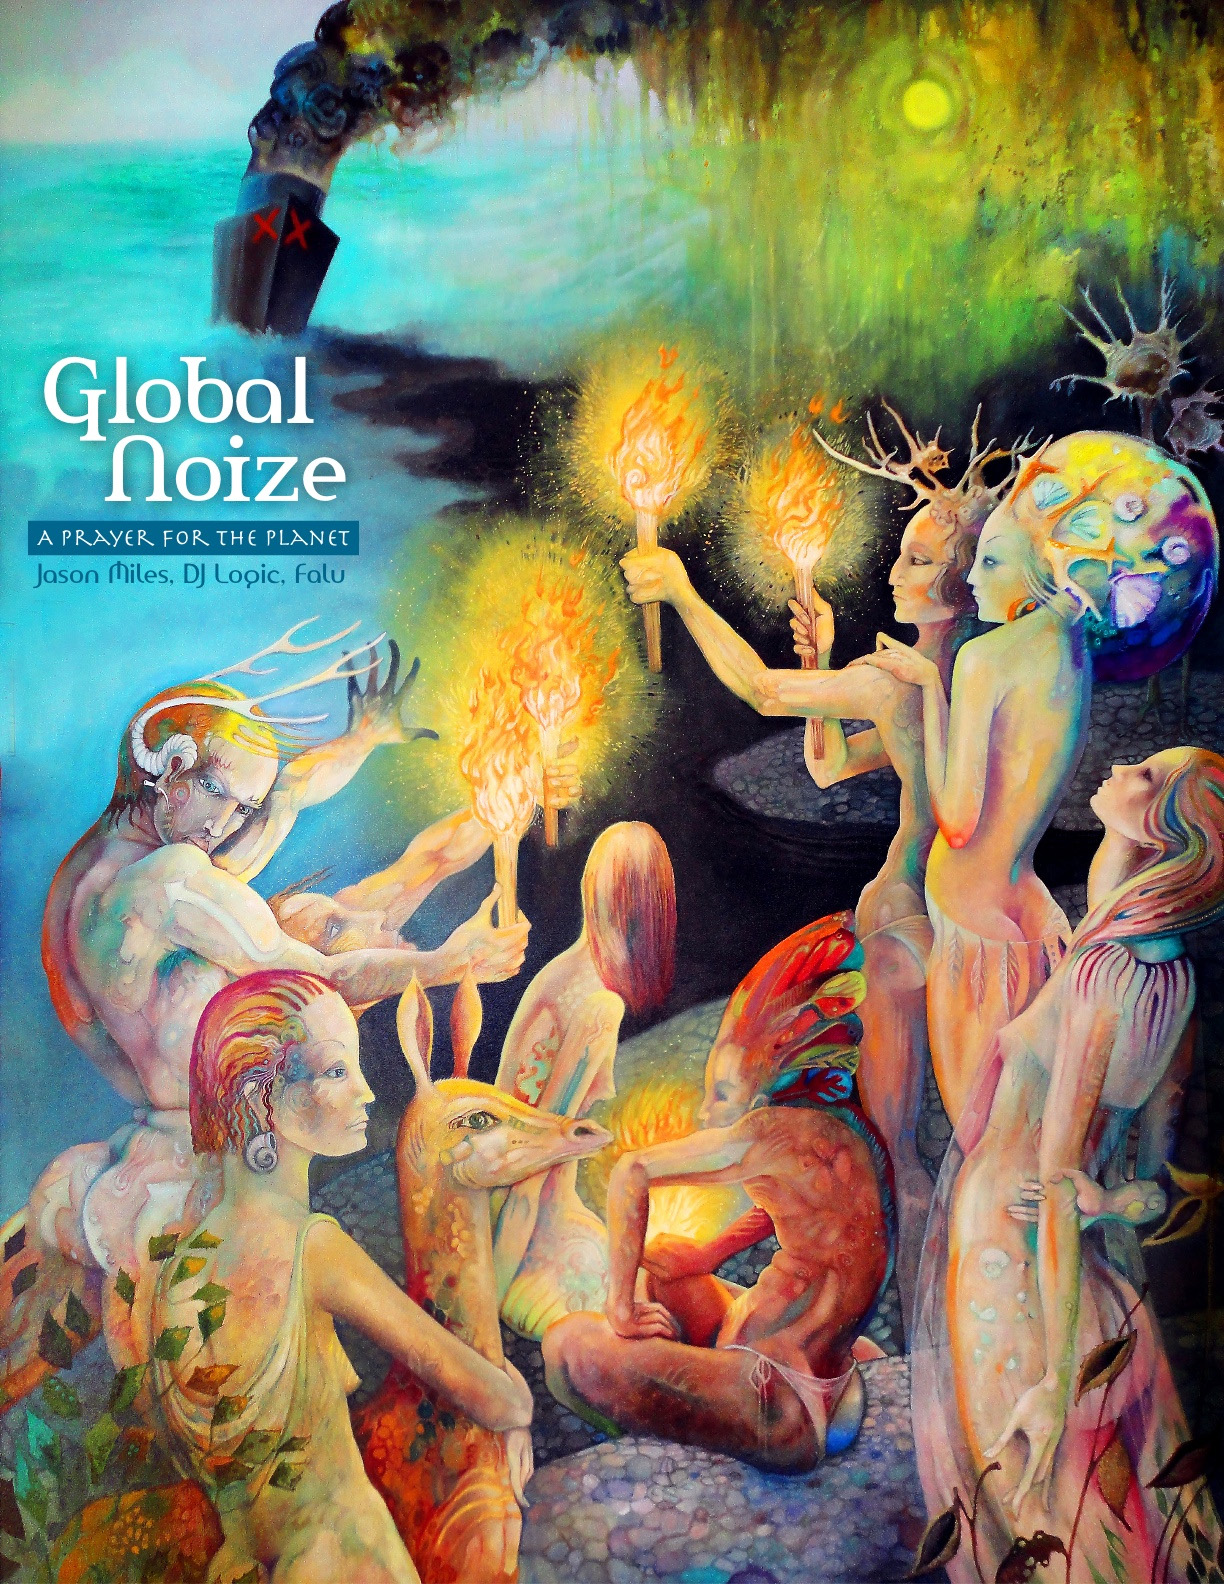 Global Noize: A Prayer for the Planet